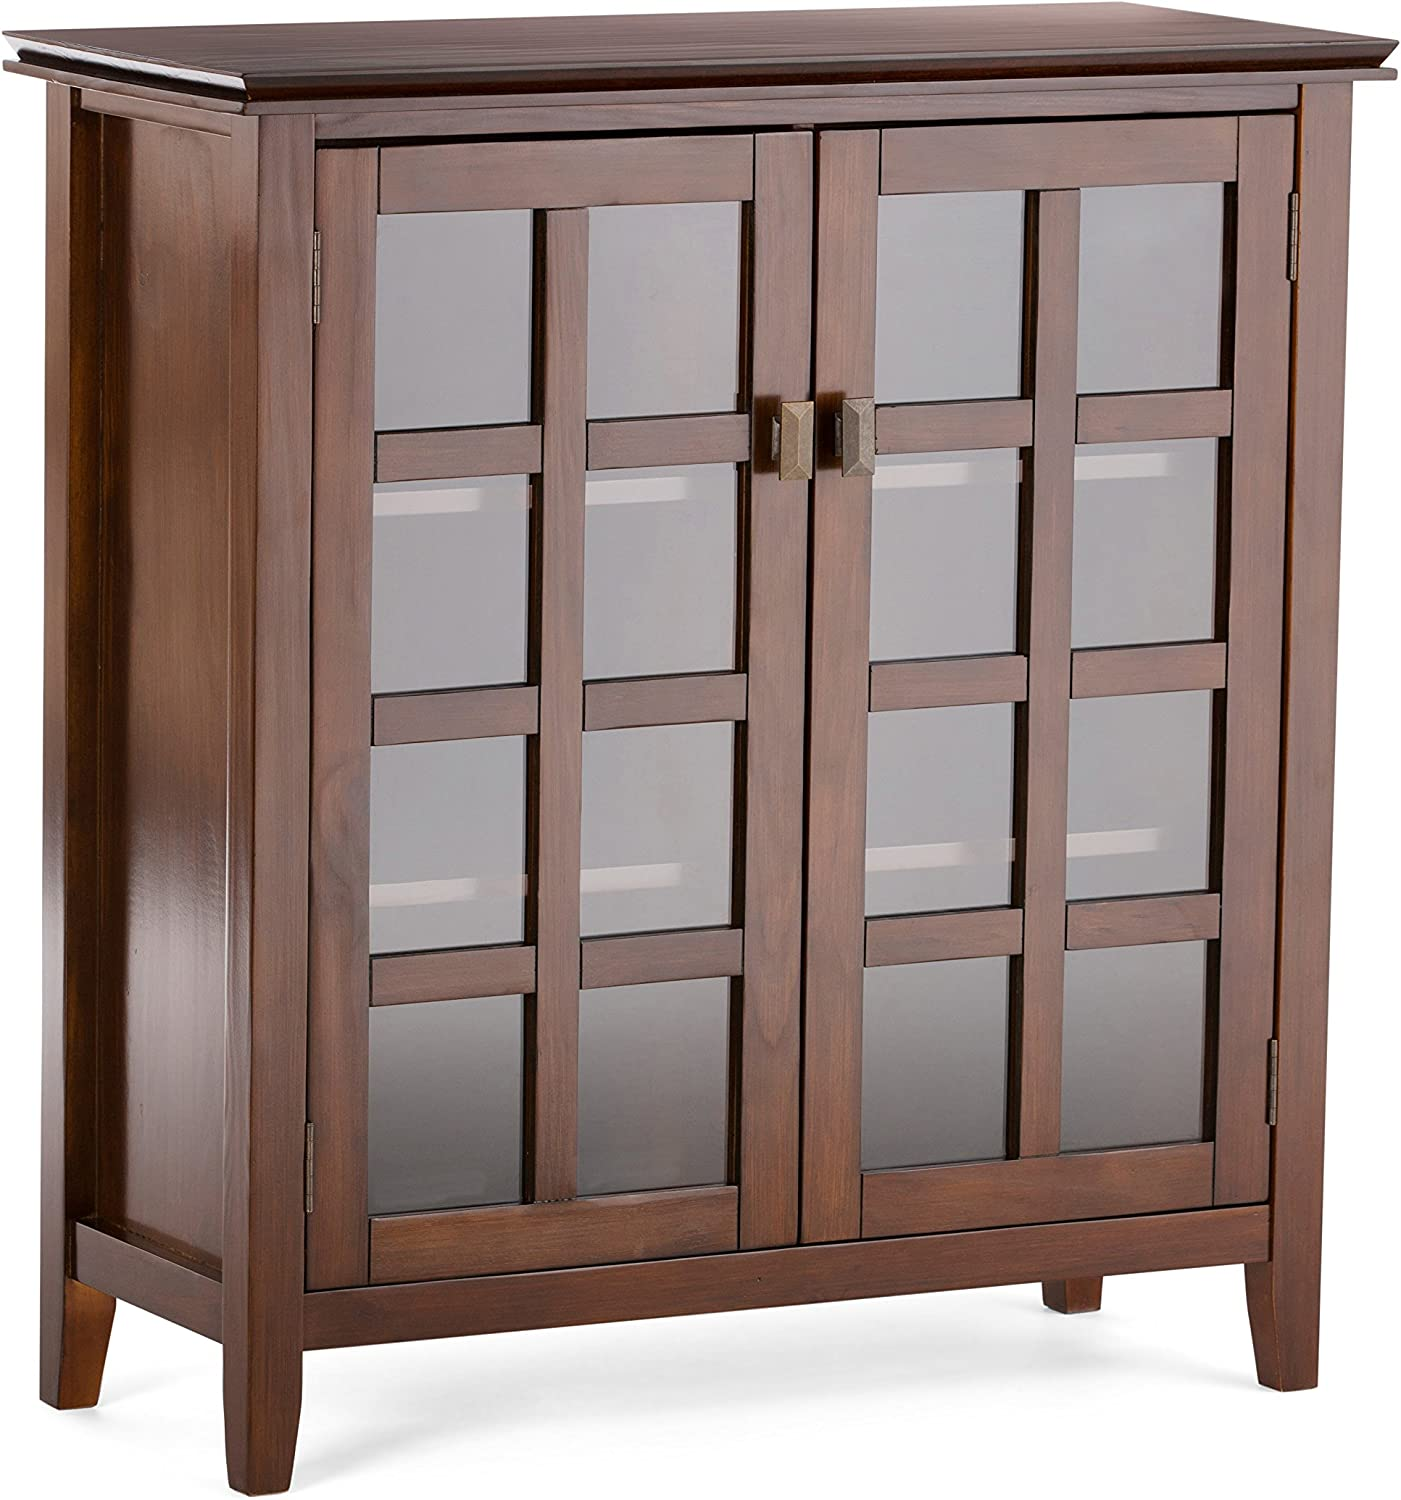 SIMPLIHOME Artisan SOLID WOOD 38 inch Wide Contemporary Medium Storage Cabinet in Russet Brown, with 2 tempered glass doors , 4 adjustable shelves